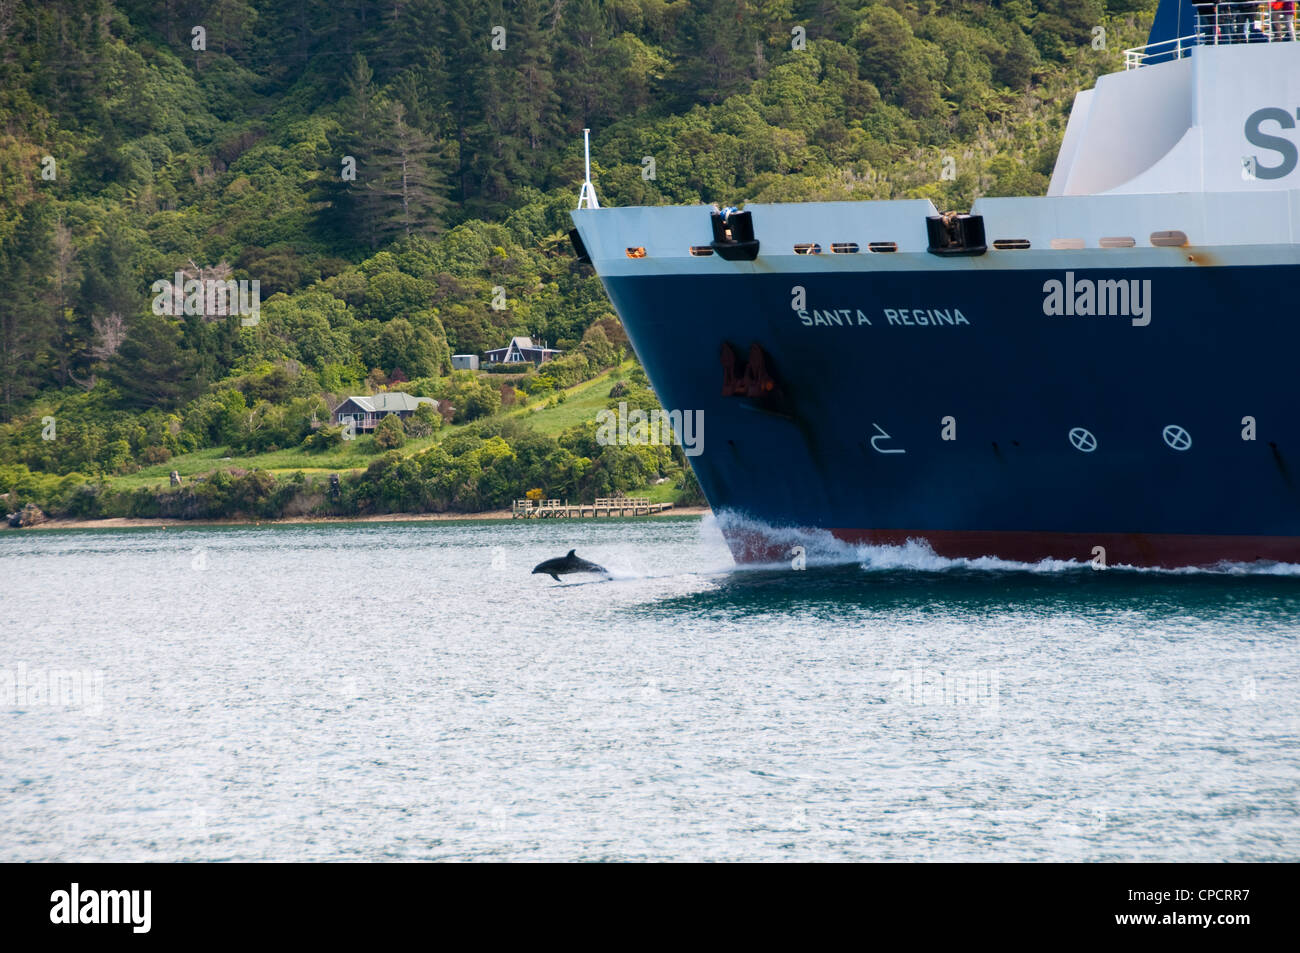 New Zealand South Island Picton, dolphins riding bow wave of ferry in Marlborough Sounds. - Stock Image